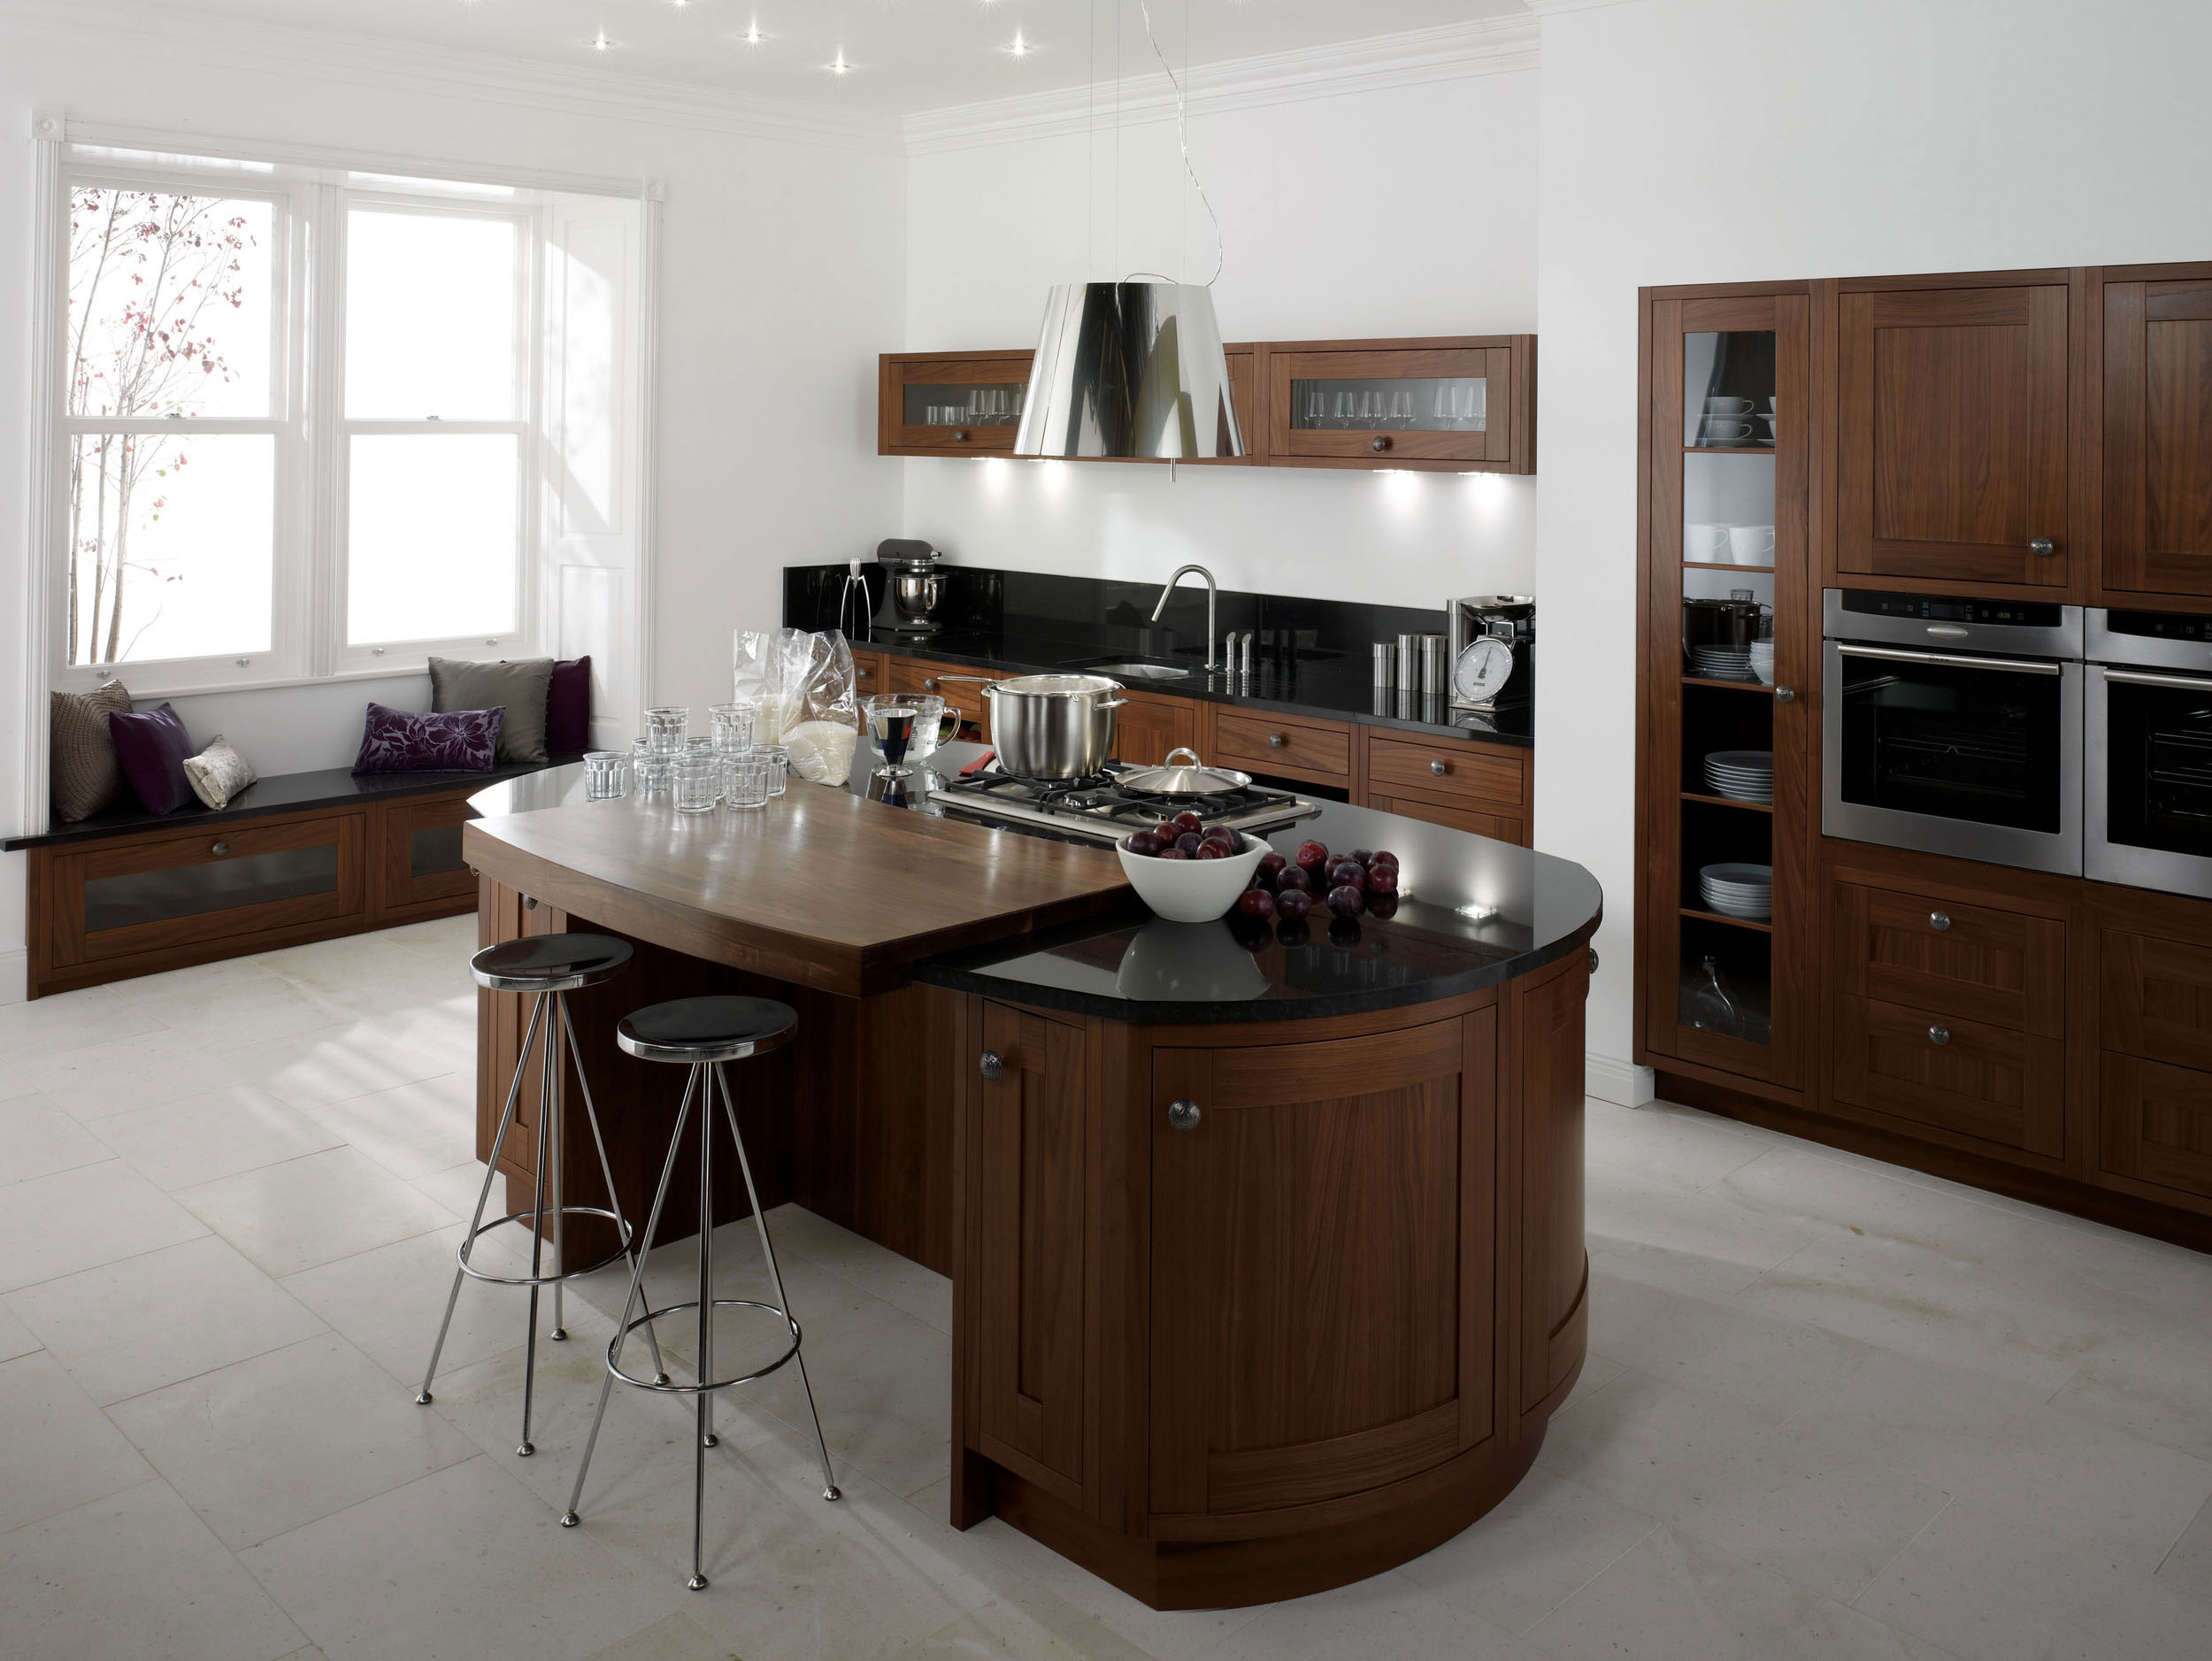 Kitchen Design With Round Island Milton Walnut From Eaton Kitchen Designs Wolverhampton